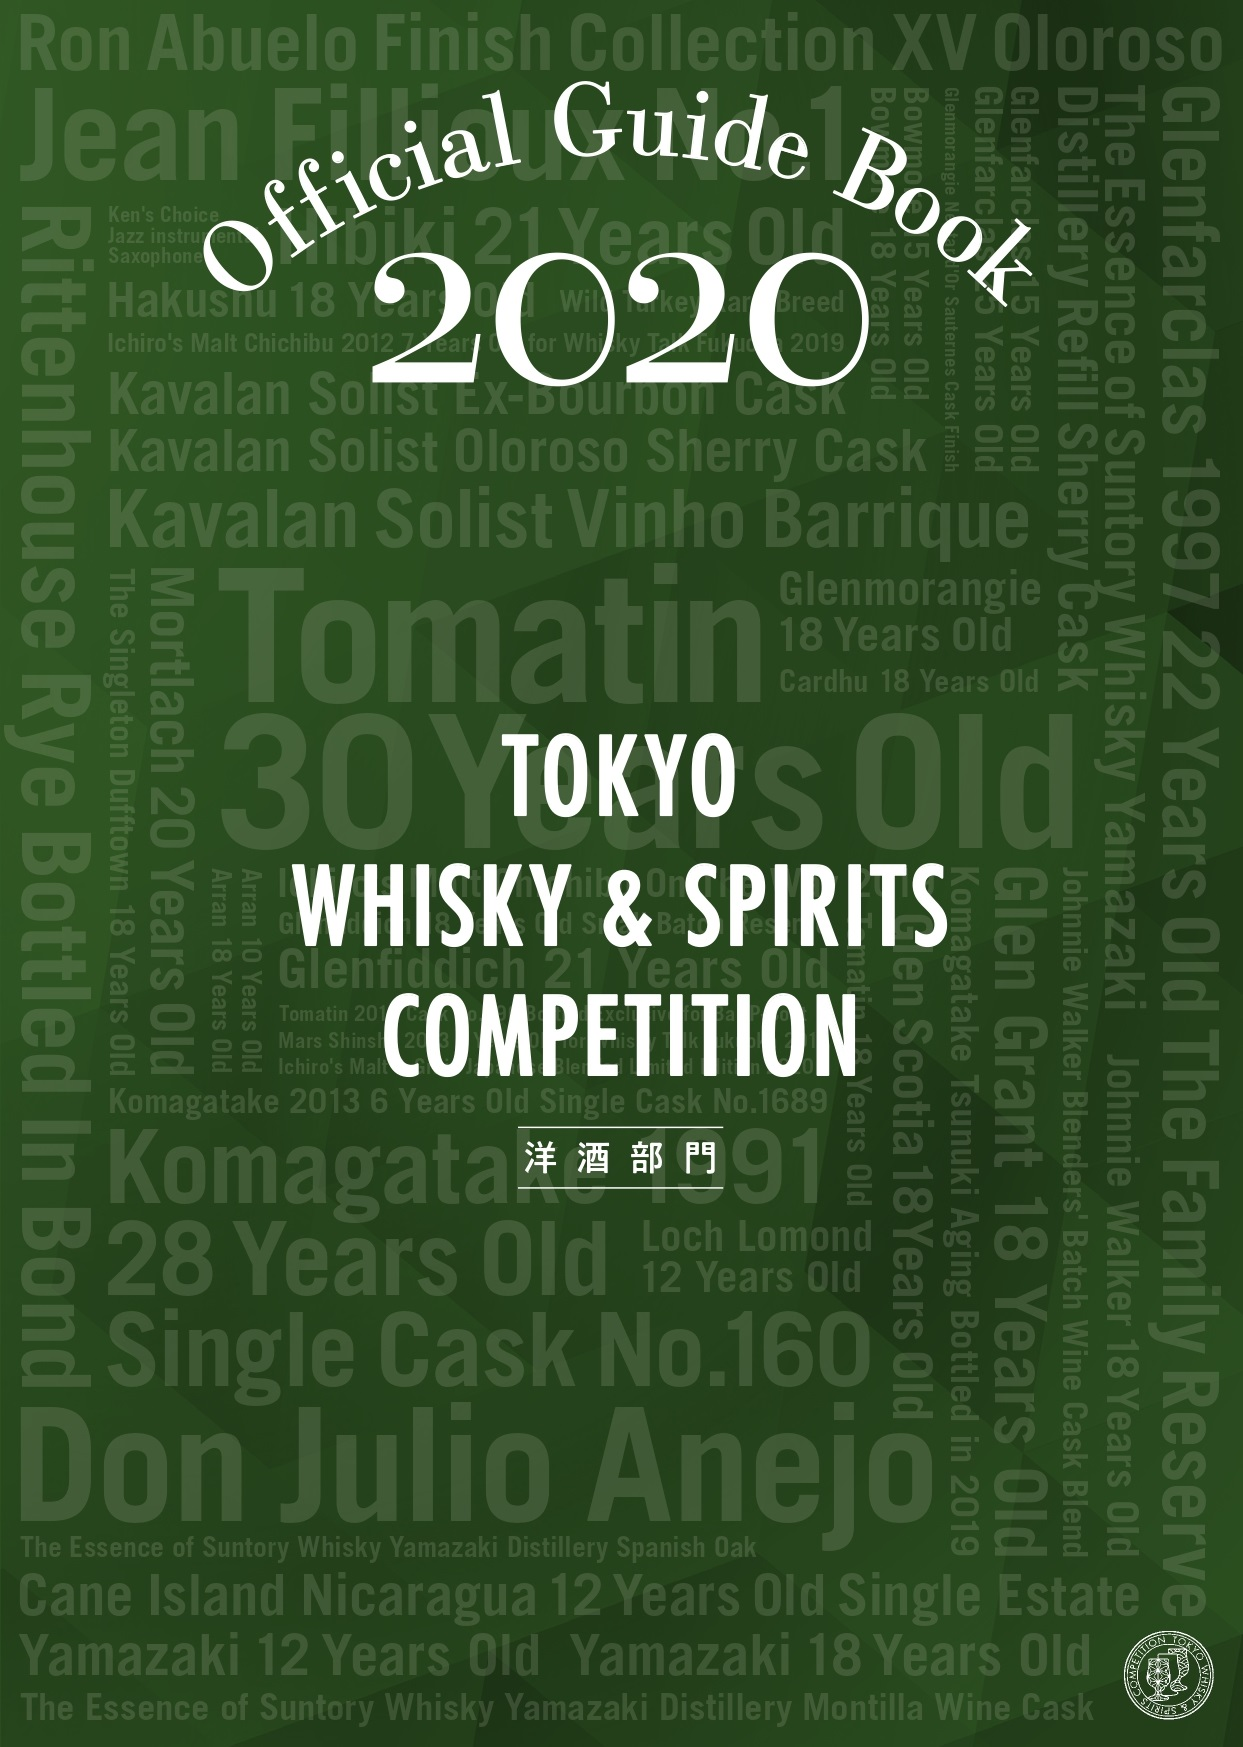 TOKYO WHISKY & SPIRITS COMPETITION Official Guide Book 2020 《洋酒部門》